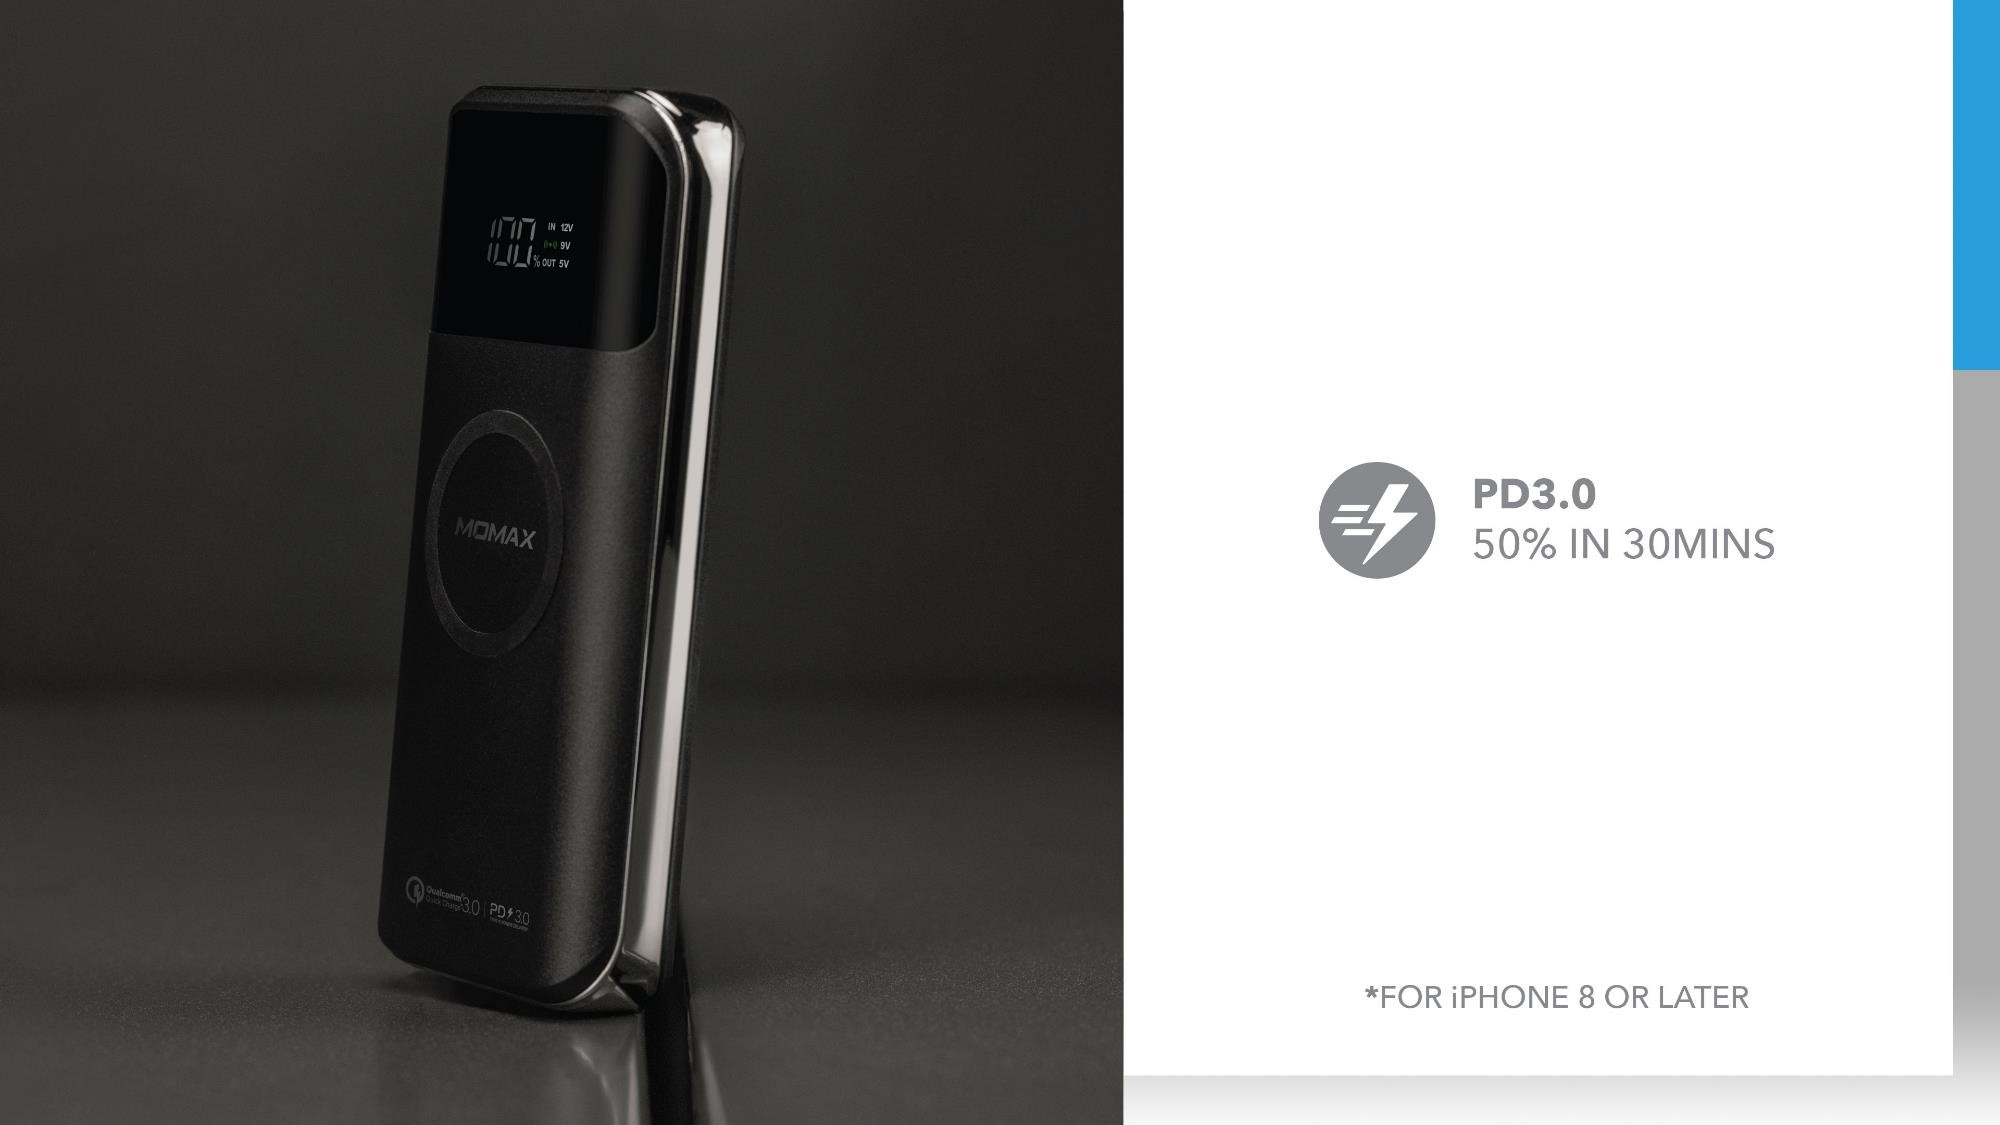 Q.Power Air 2+ Wireless External Battery Pack: PD3.0 50% in 30minutes